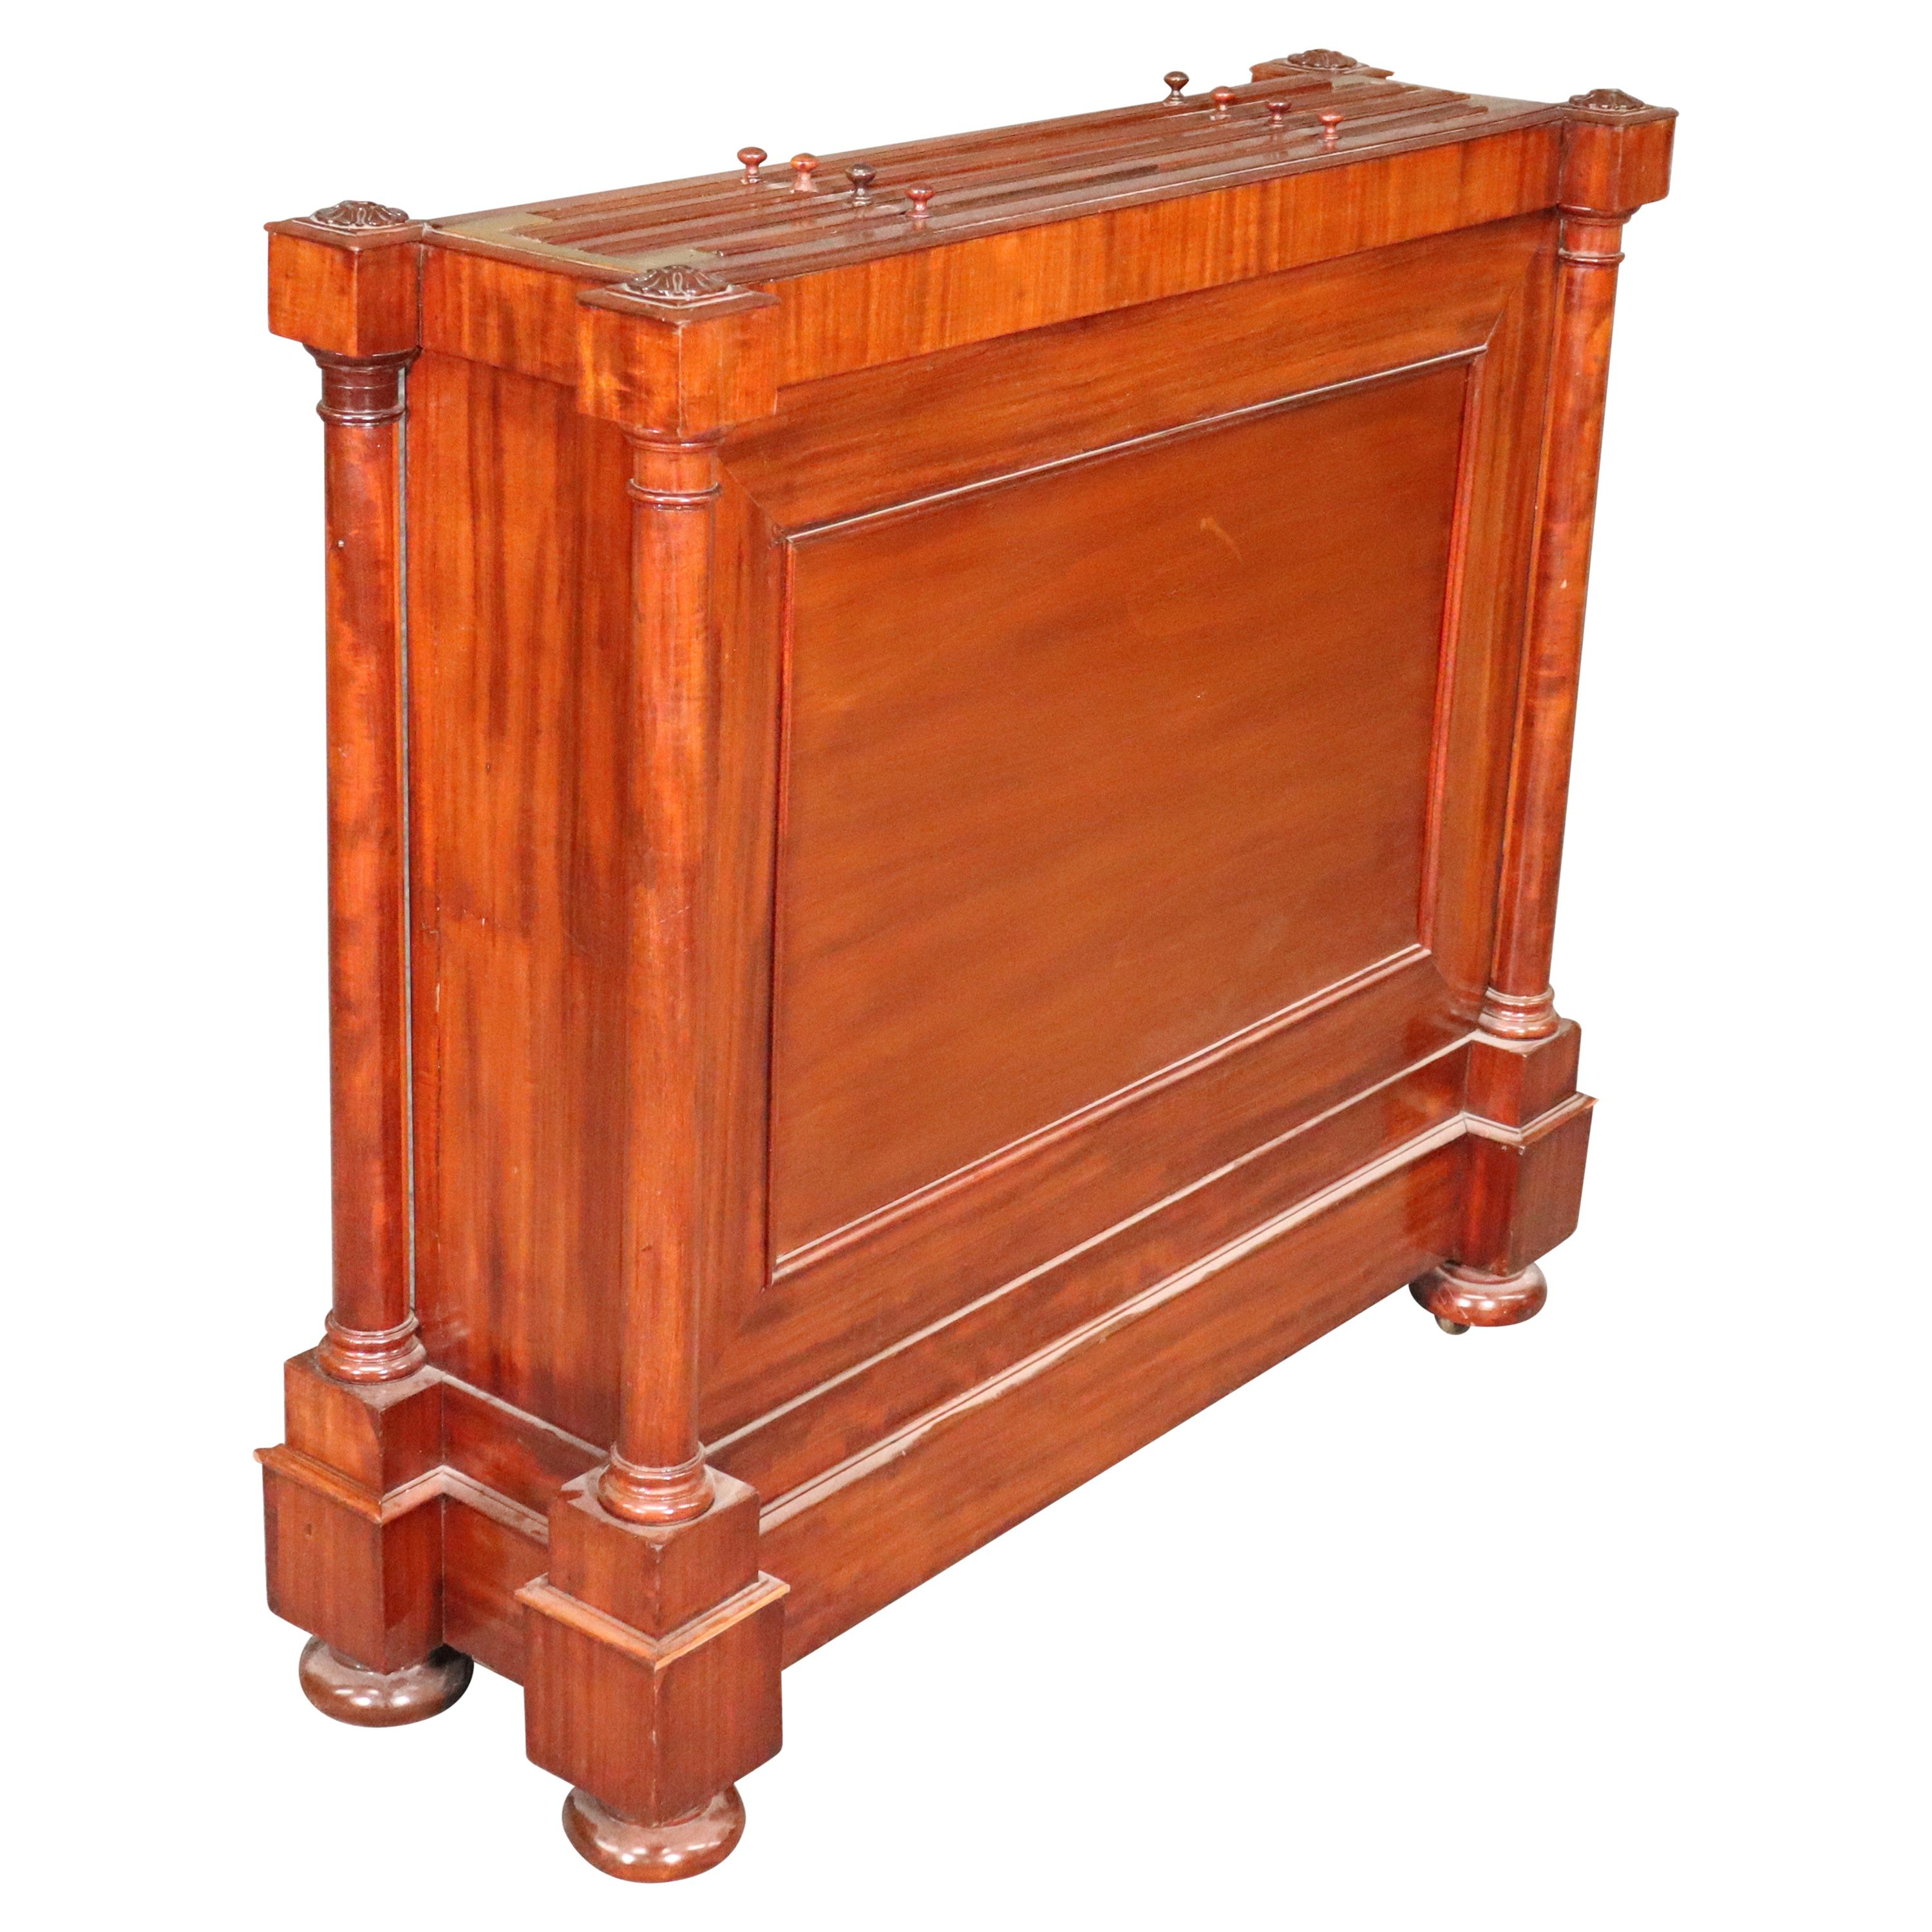 English Regency Mahogany 1820s Era Map Cabinet with Antique Maps of the World